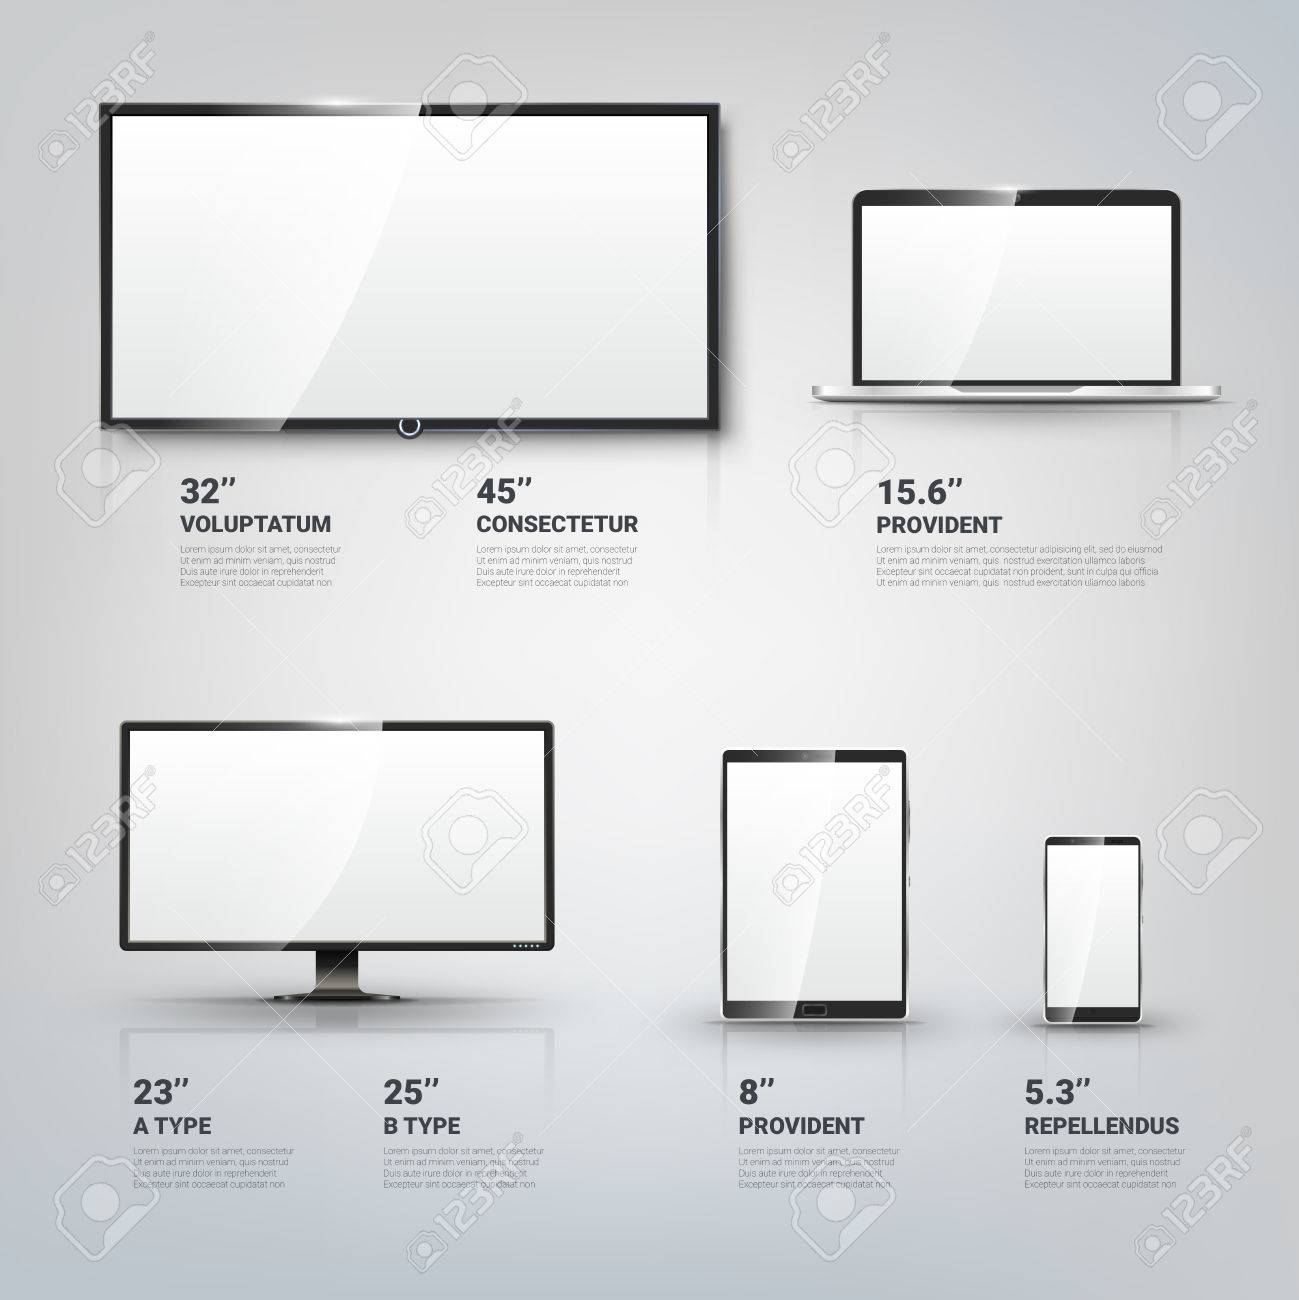 TV screen, Lcd monitor and notebook, tablet computer, mobile